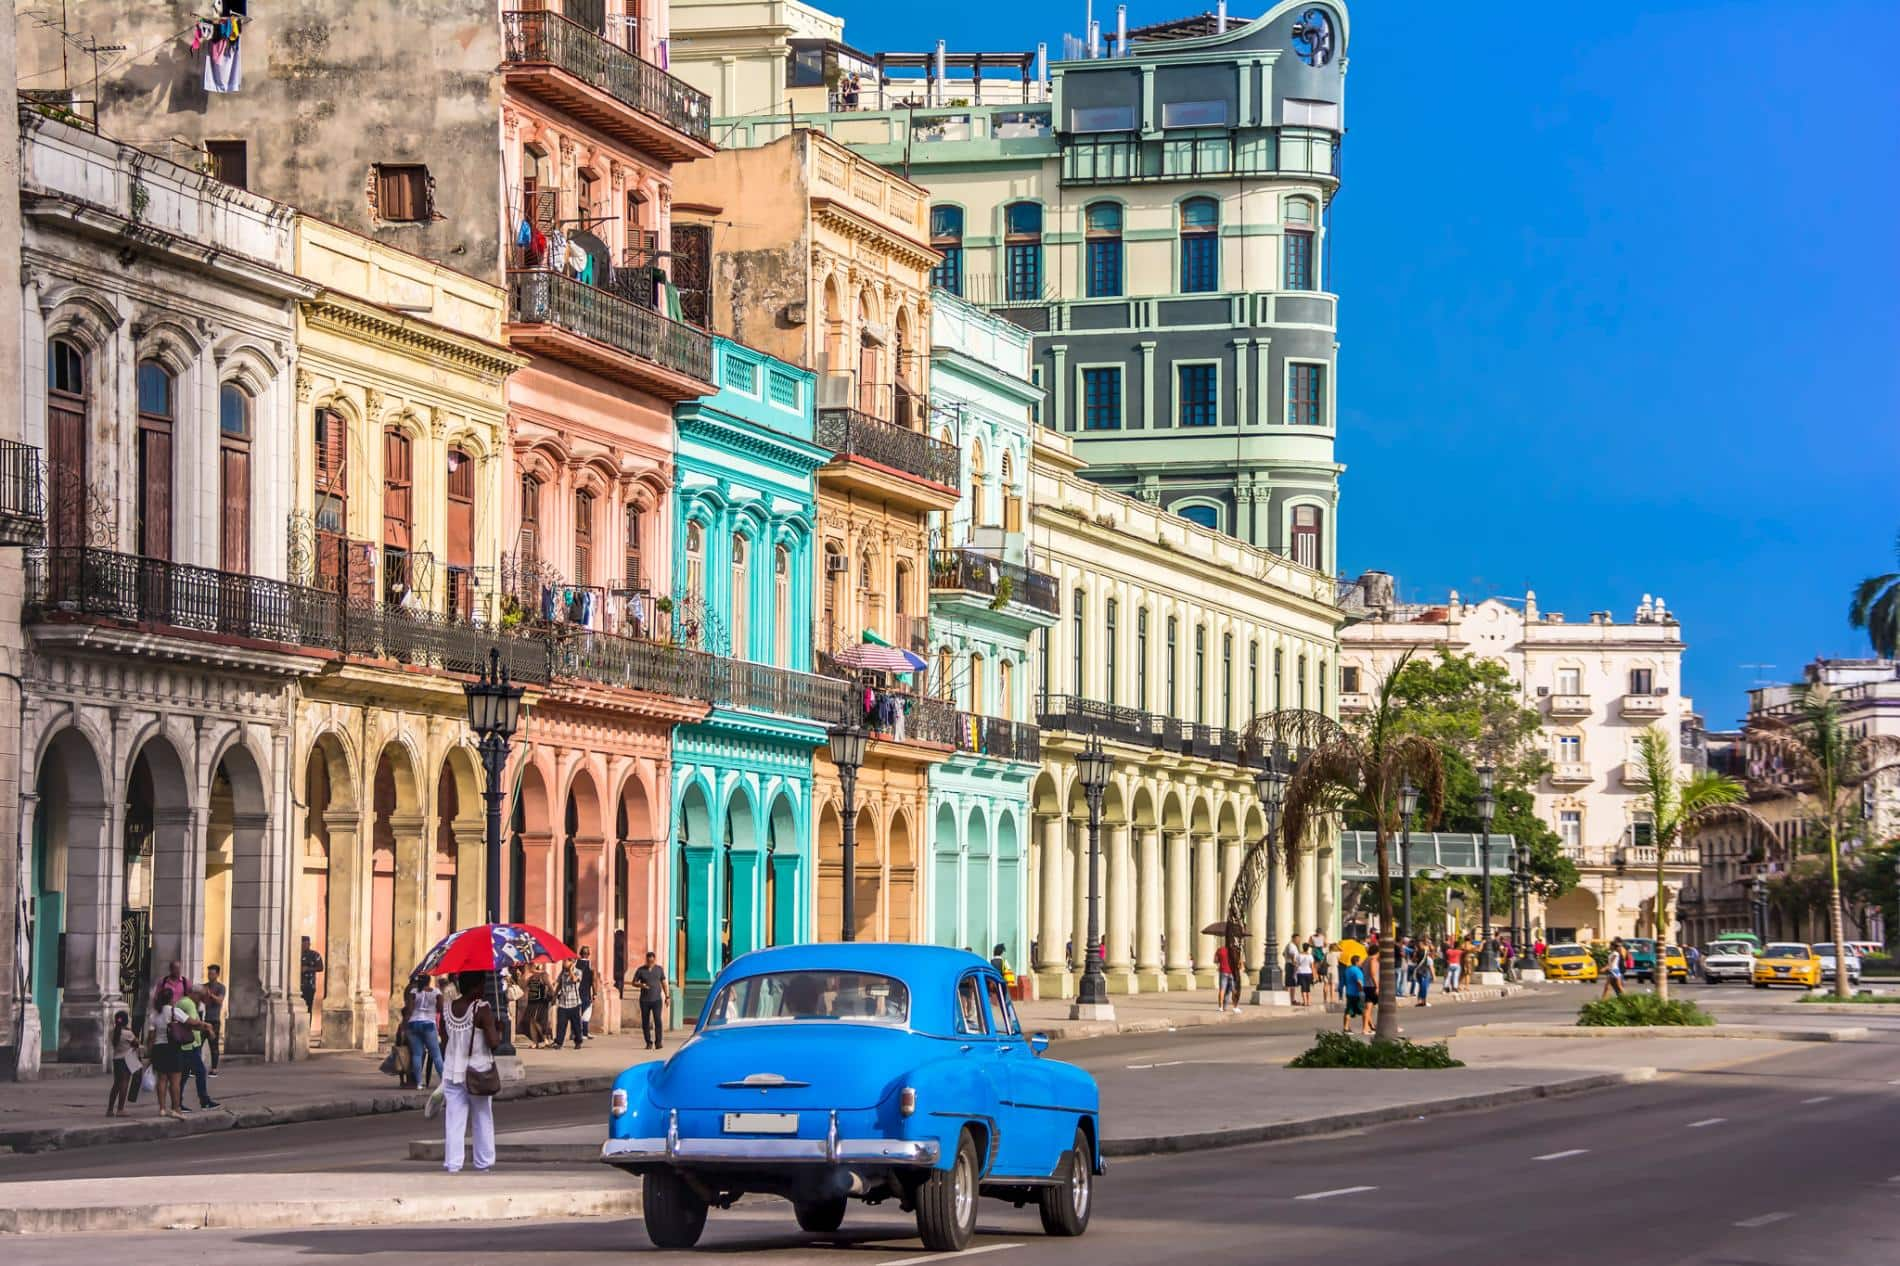 Los Angeles to Havana Cuba $187 RT Airfares on American Airlines Main Cabin (Travel December - March 2021)